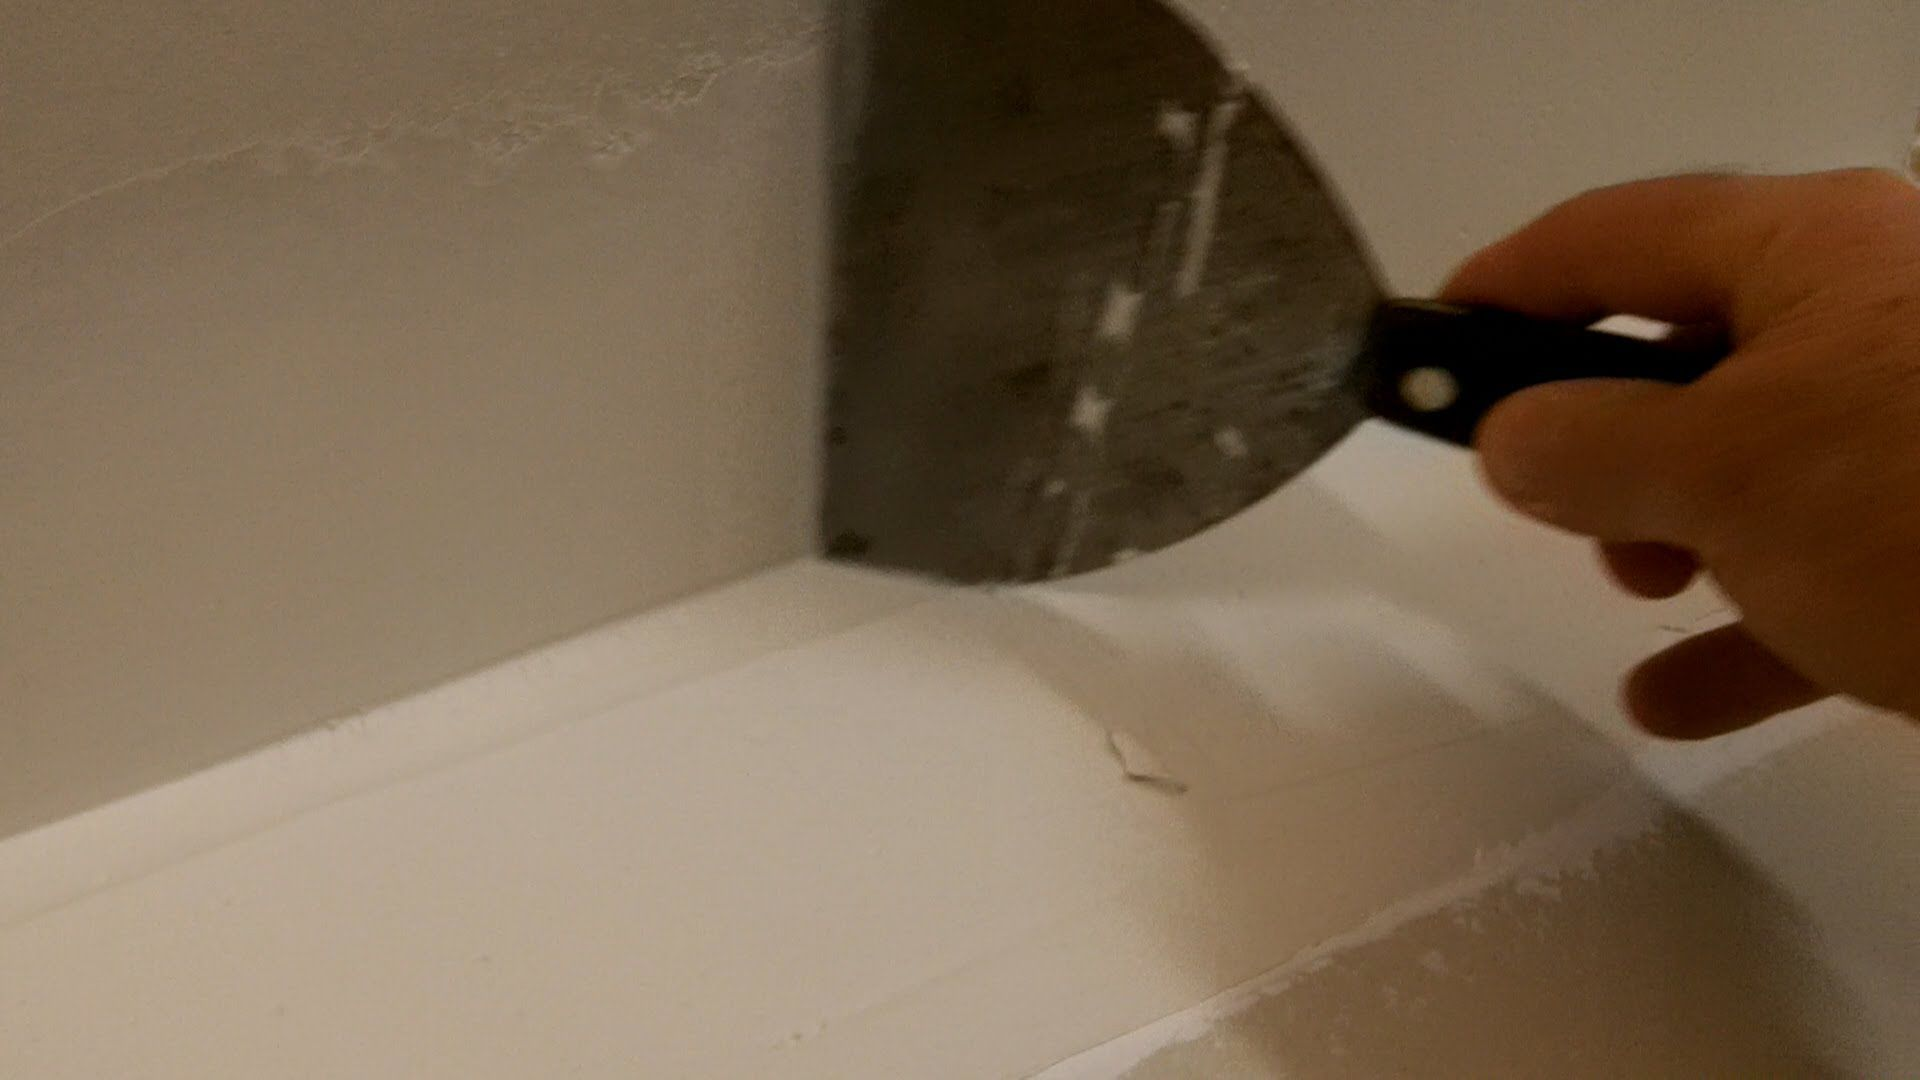 How To Tape And Finish An Inside Drywall Corner A Closer Look Drywall Corners Drywall Sheetrock Repair